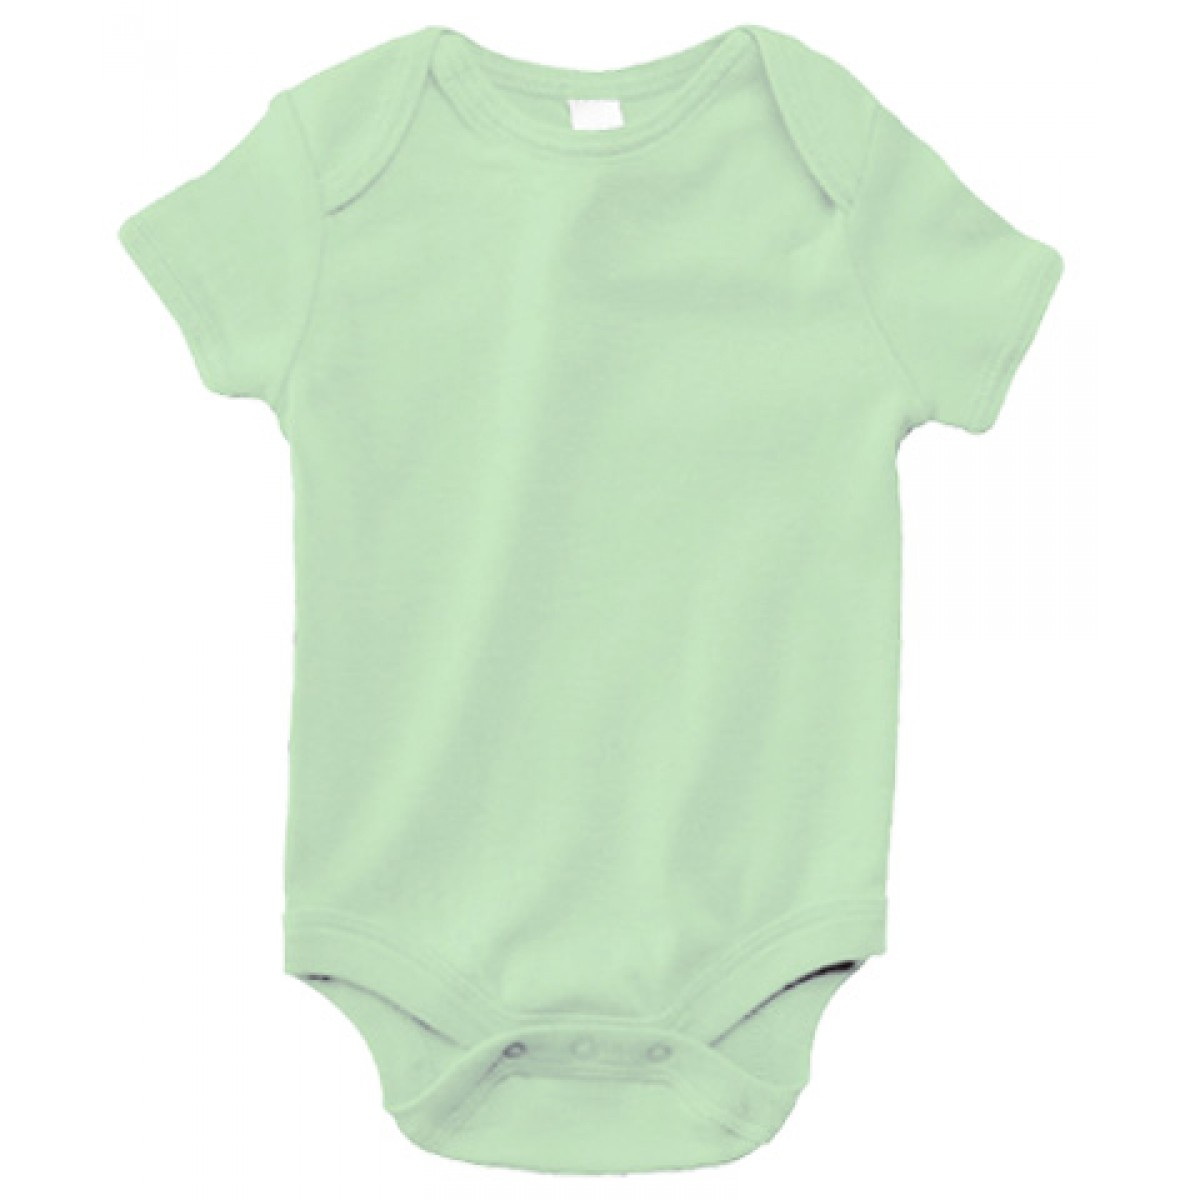 Pale Green B100 Bella + Canvas Infants'Short-Sleeve Baby -Pale Green-3-6 Months